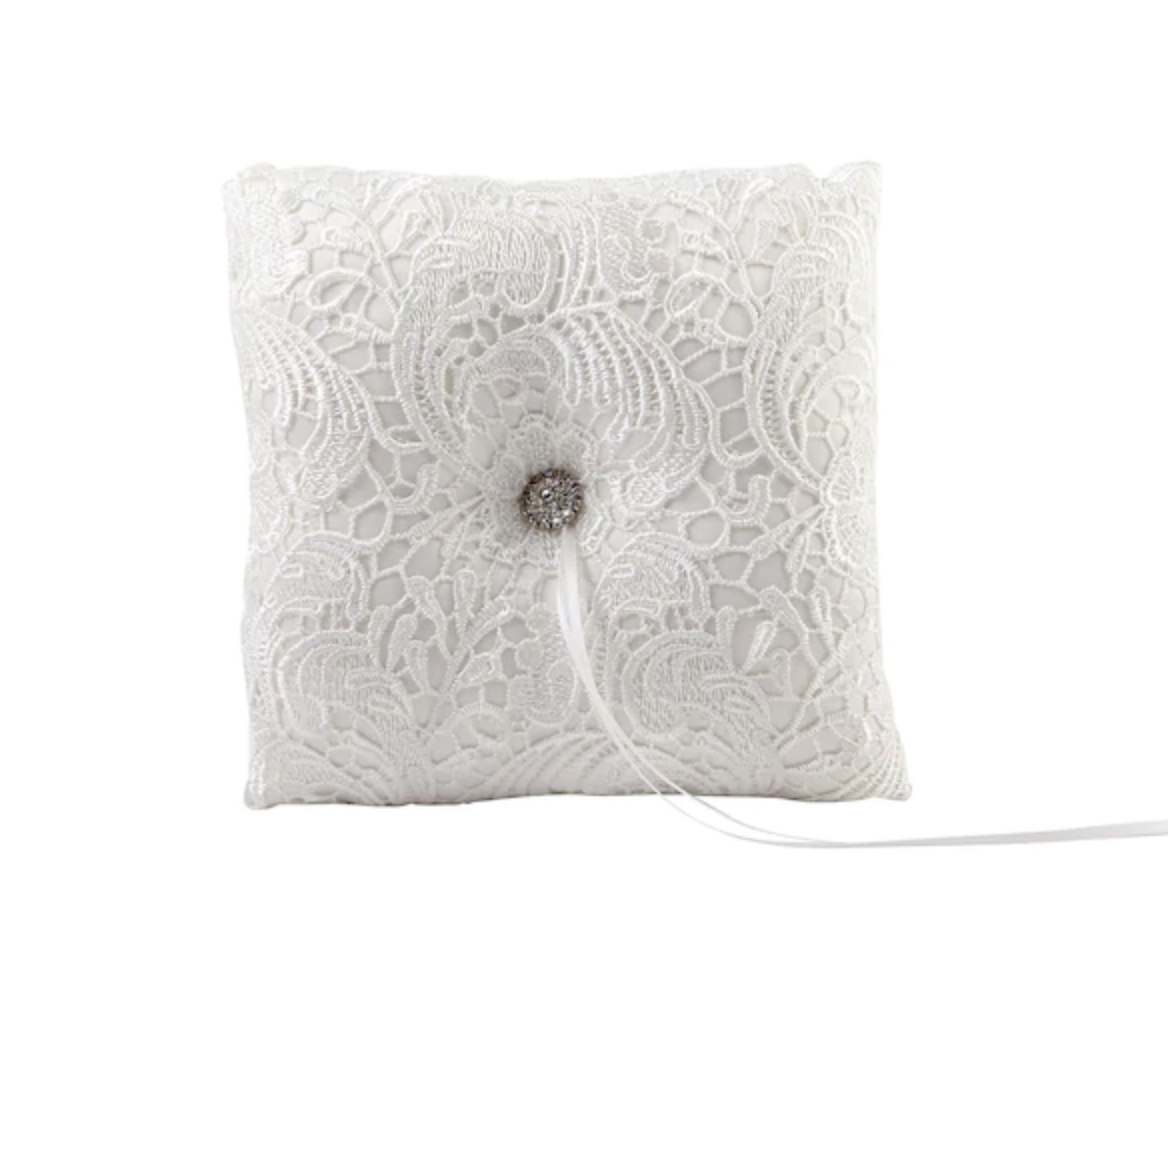 Vintage Lace Ring Bearer Pillow by Celebrate It Occasions Michaels photo